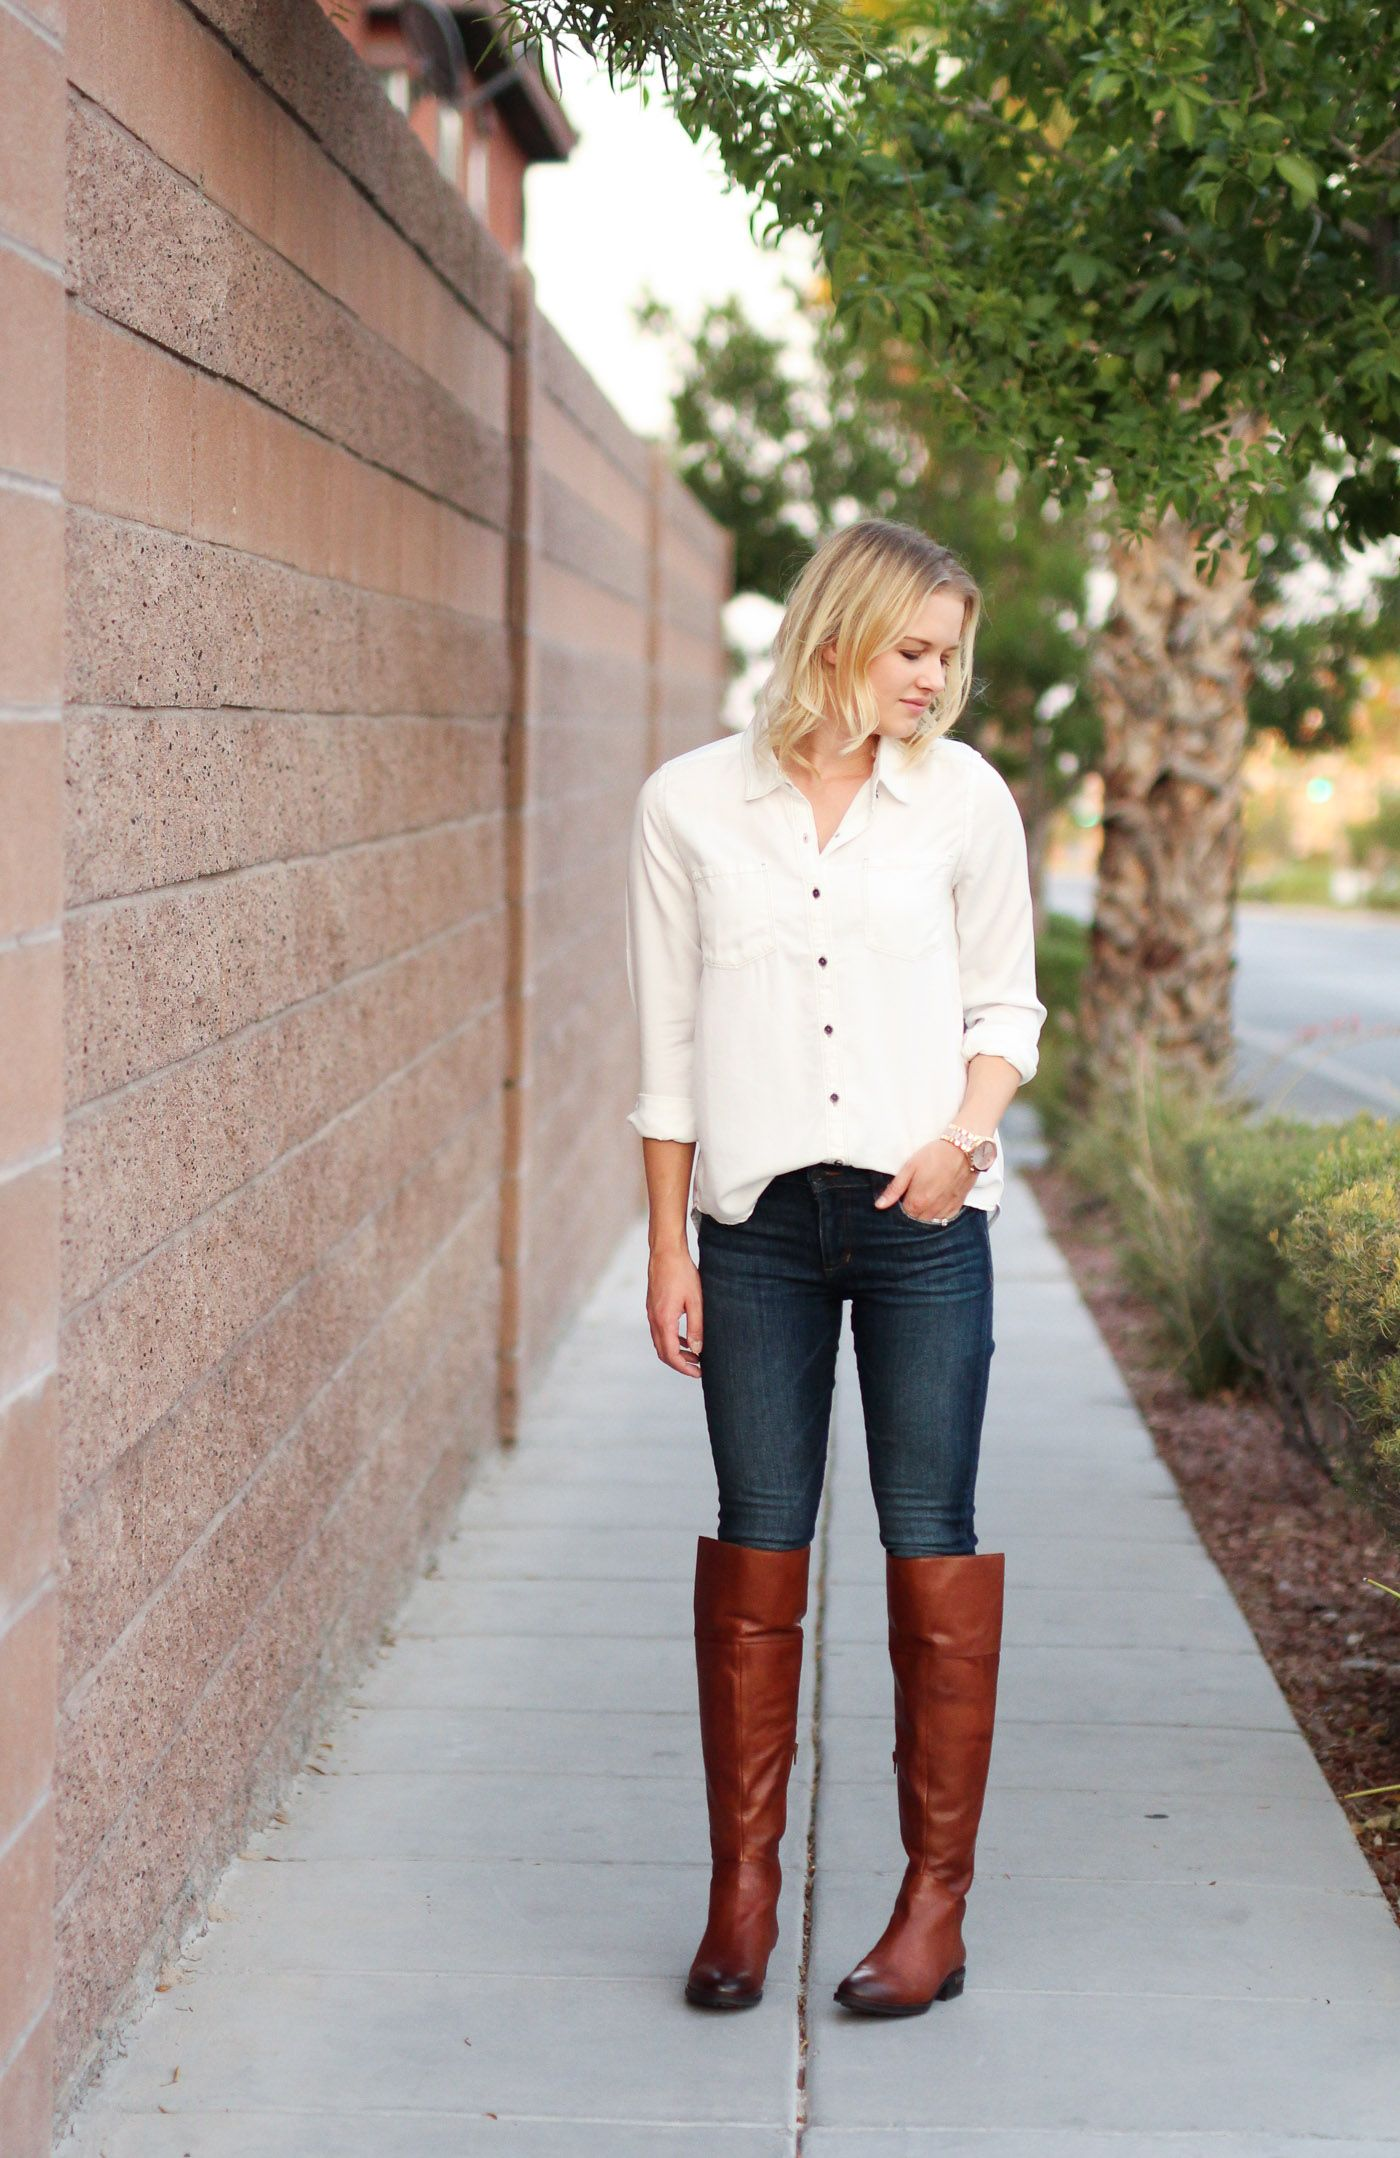 Over The Knee Boots with Skinny Jeans and White Button-Up Shirt | Women's Fall Fashion Outfit